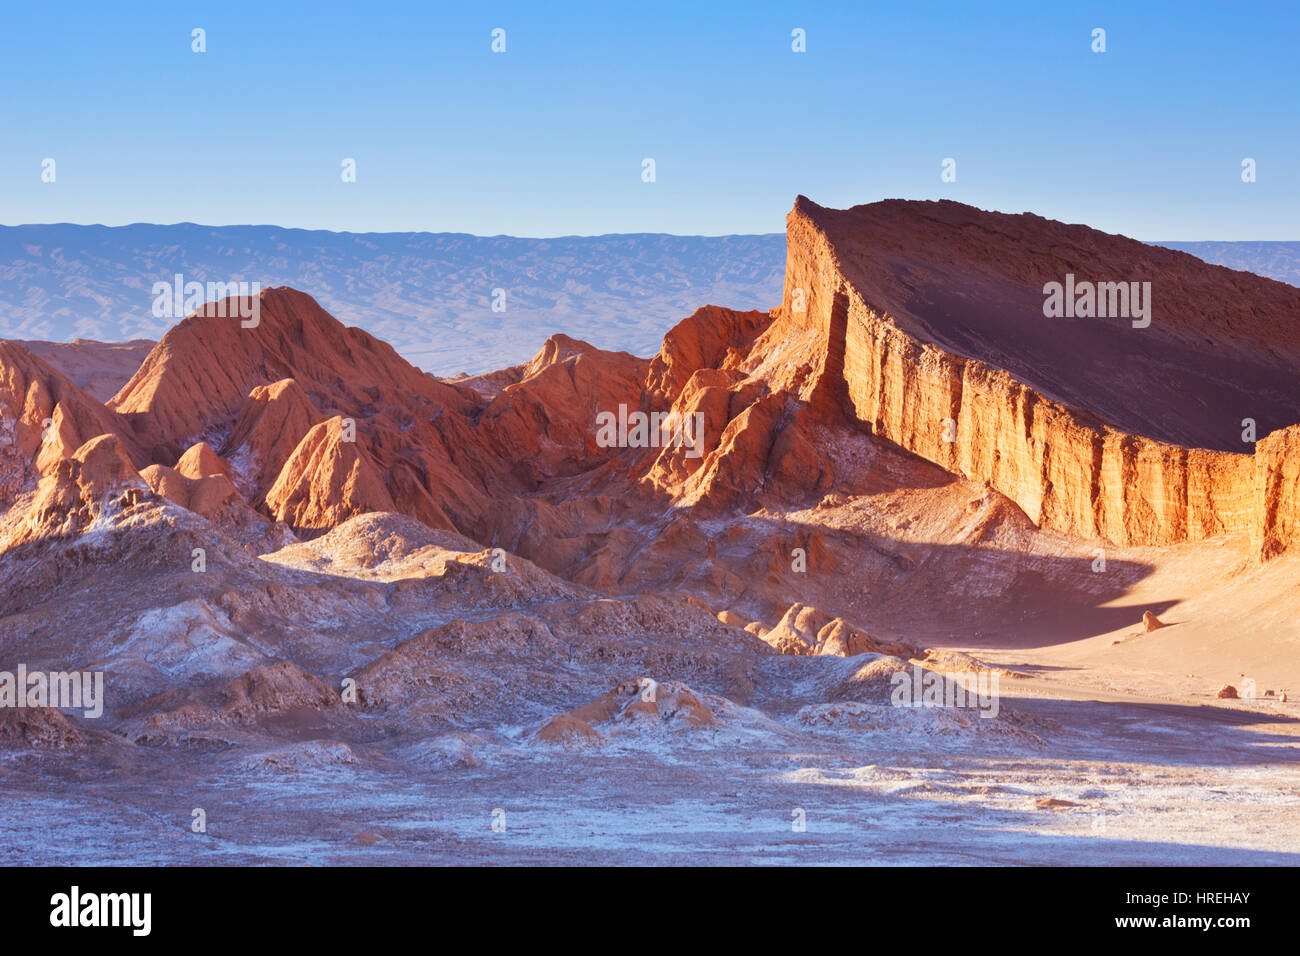 Valle de la Luna in the Atacama Desert, northern Chile, at sunset. - Stock Image